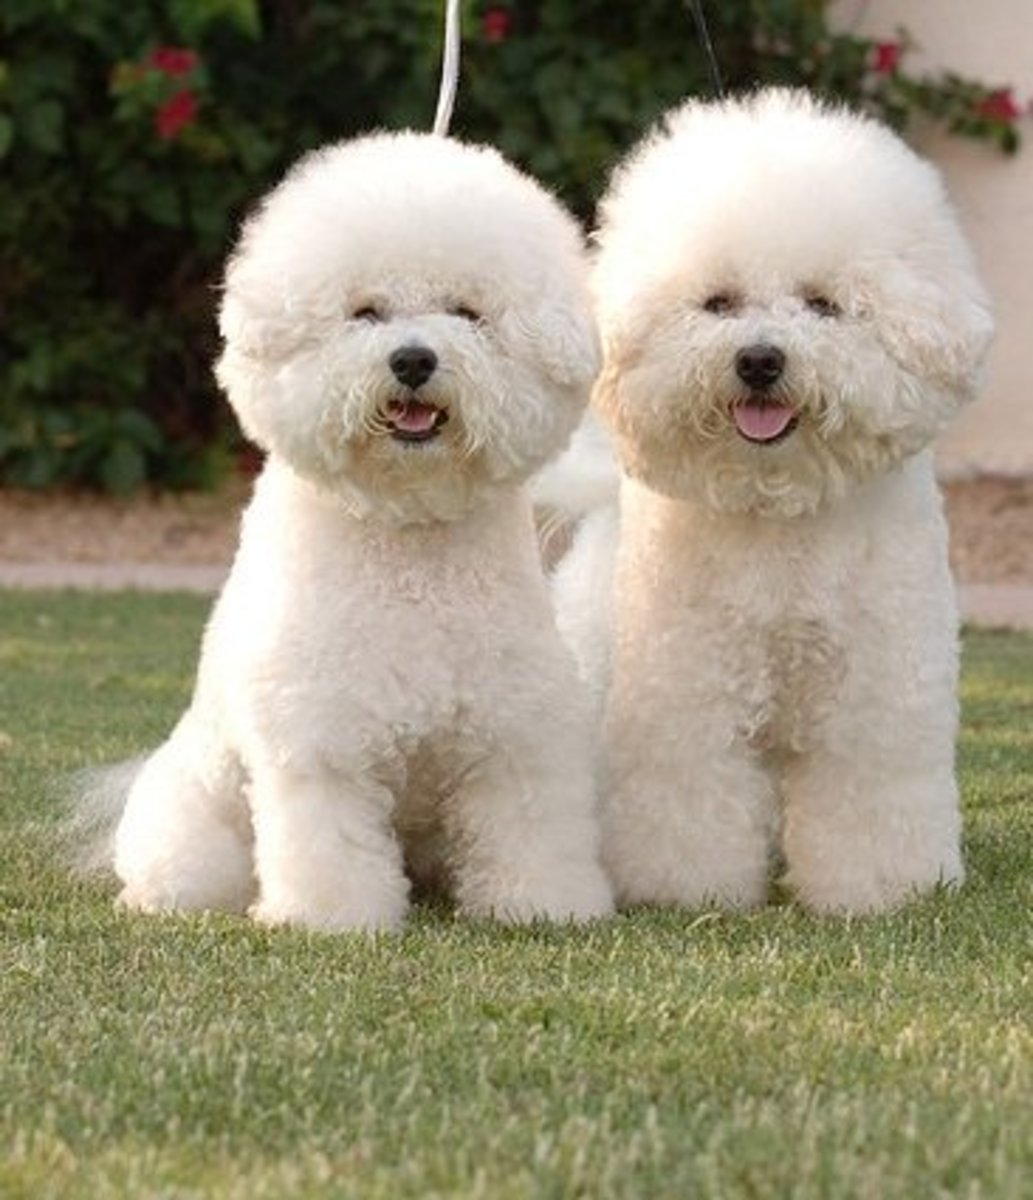 The Bichon Frisé does not have to be clipped like this, but it is cute.